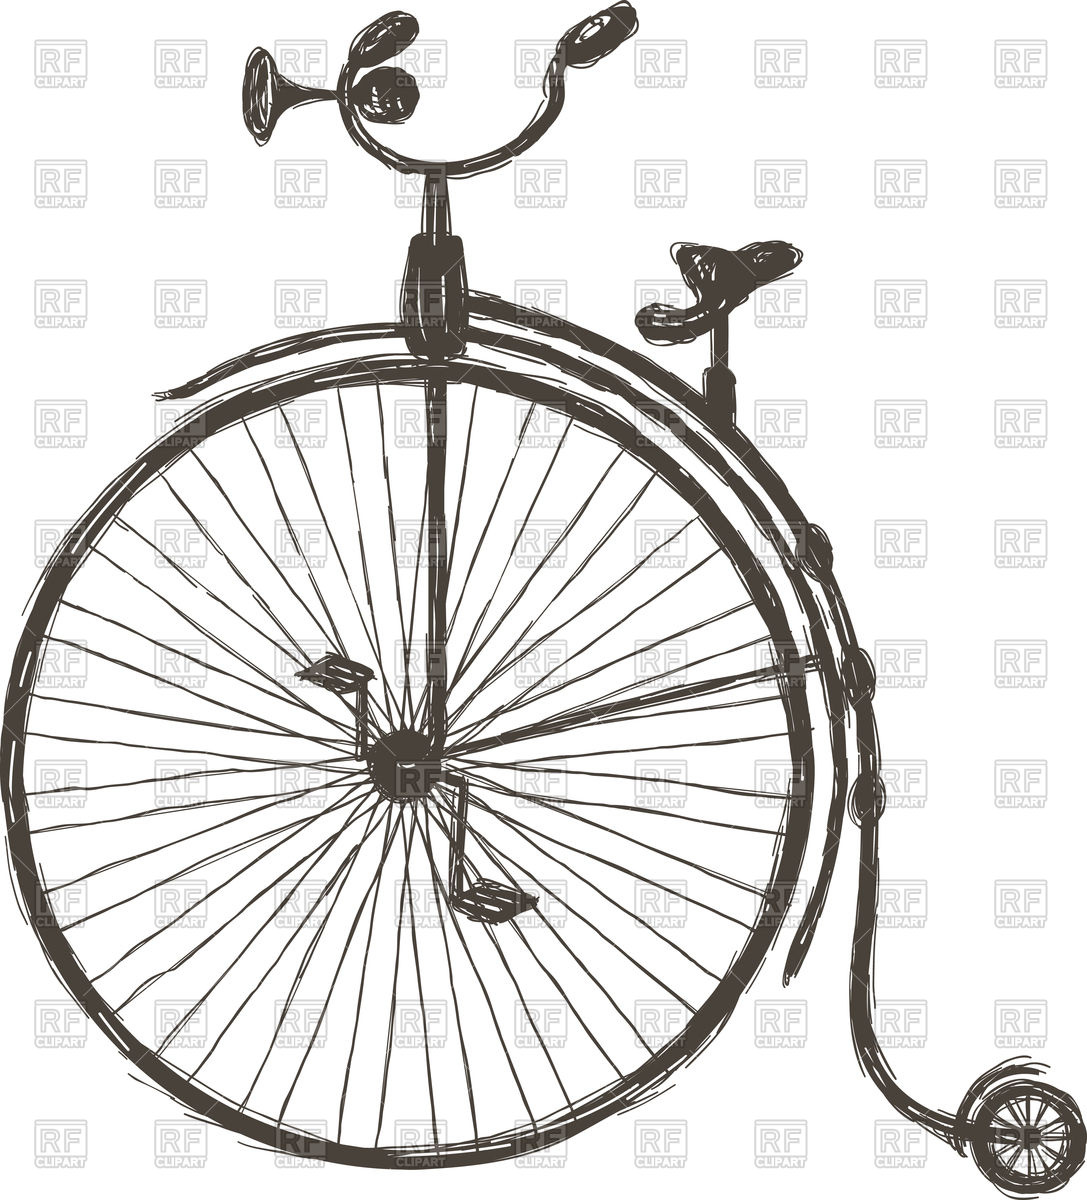 Retro bicycle with large front wheel.